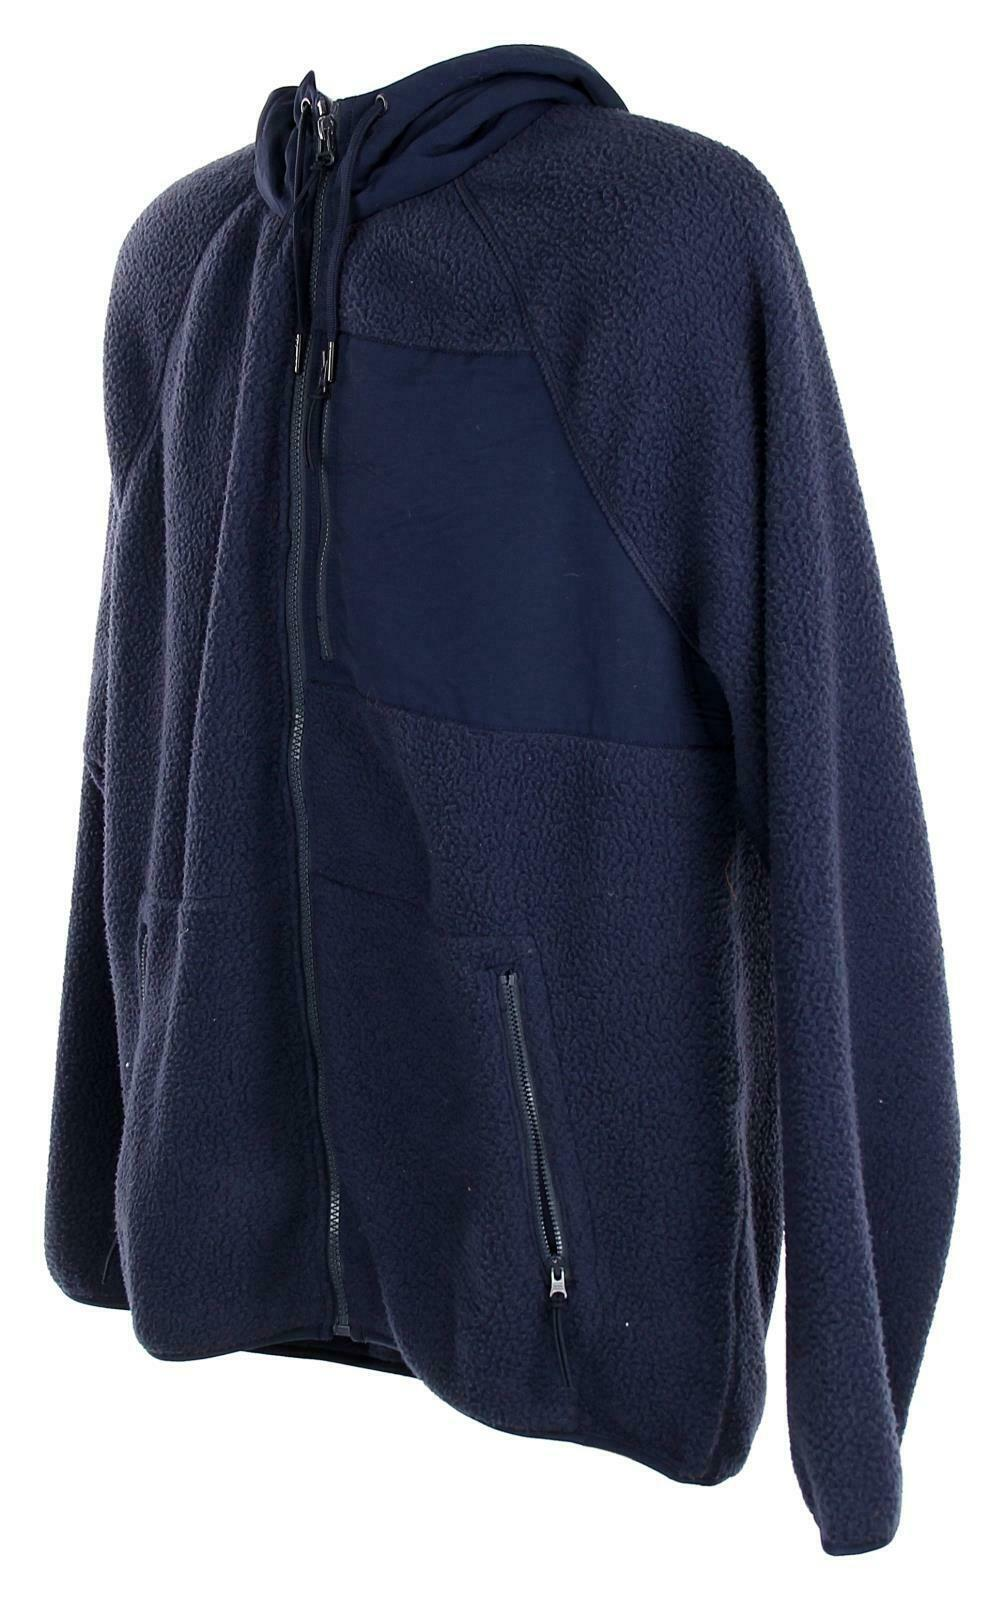 J Crew Mens Sherpa Zip Front Hooded Jacket Fleece Coat L Navy K4296 image 3